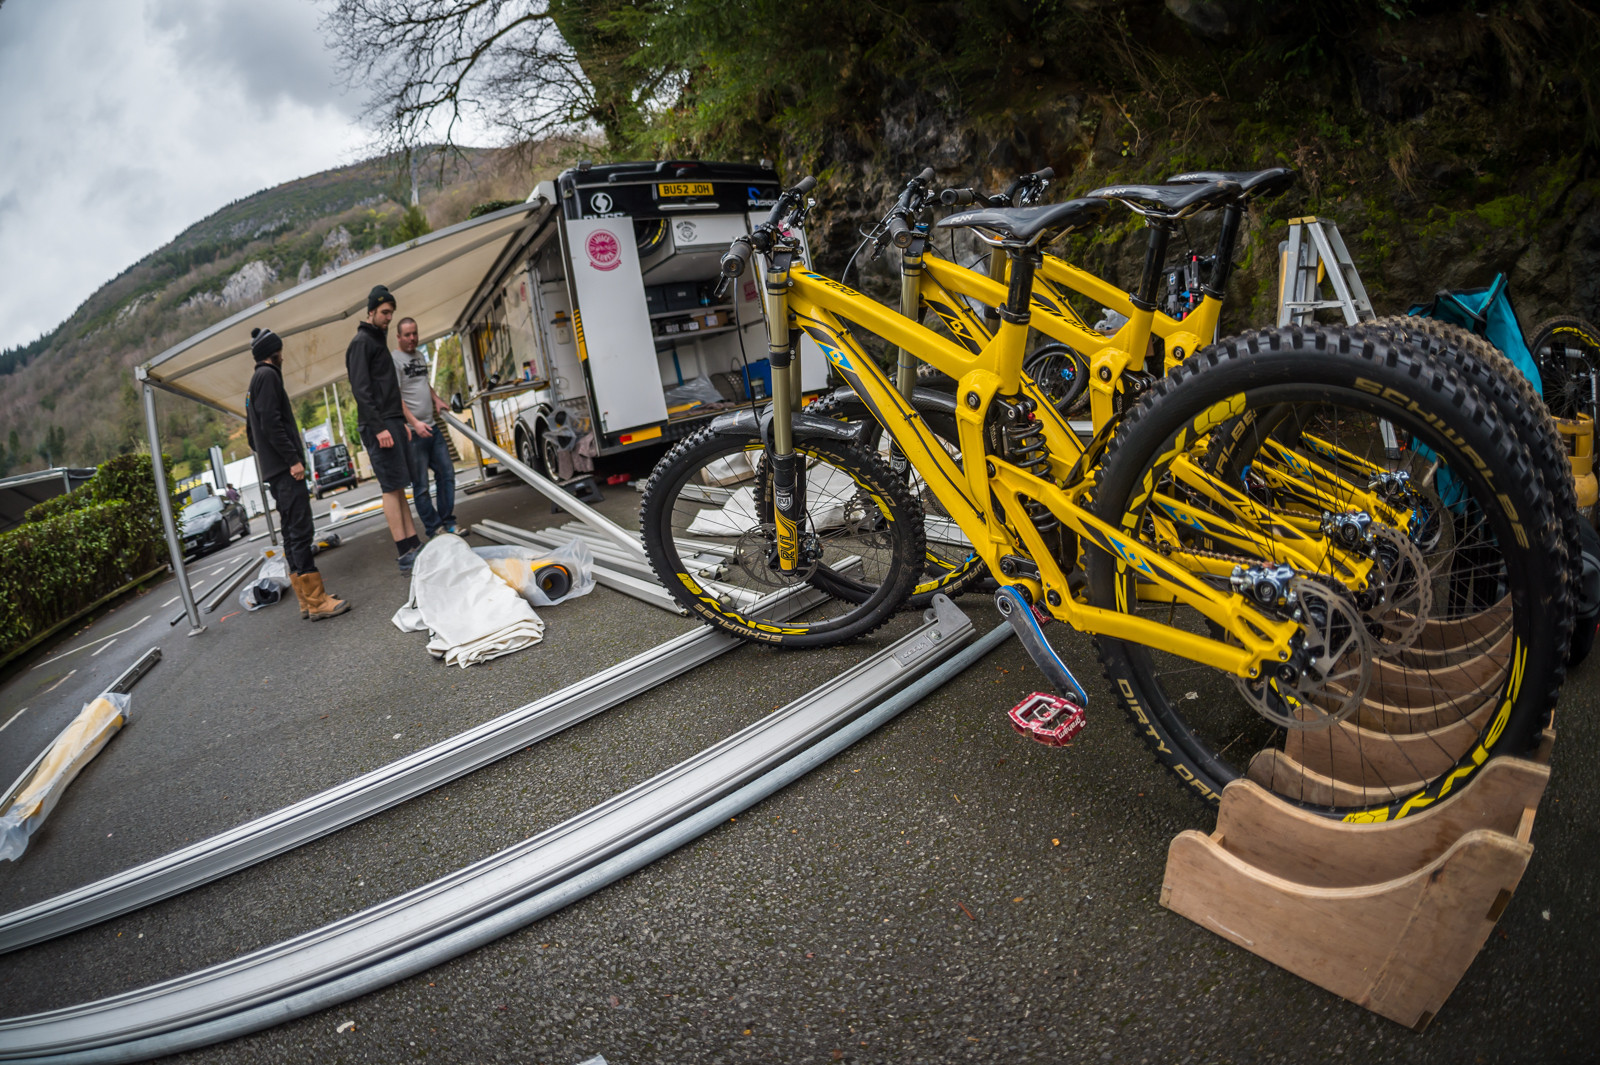 Dirt Propain Zelvy Team Rigs and Digs - PIT BITS - 2016 Lourdes World Cup Downhill - Mountain Biking Pictures - Vital MTB